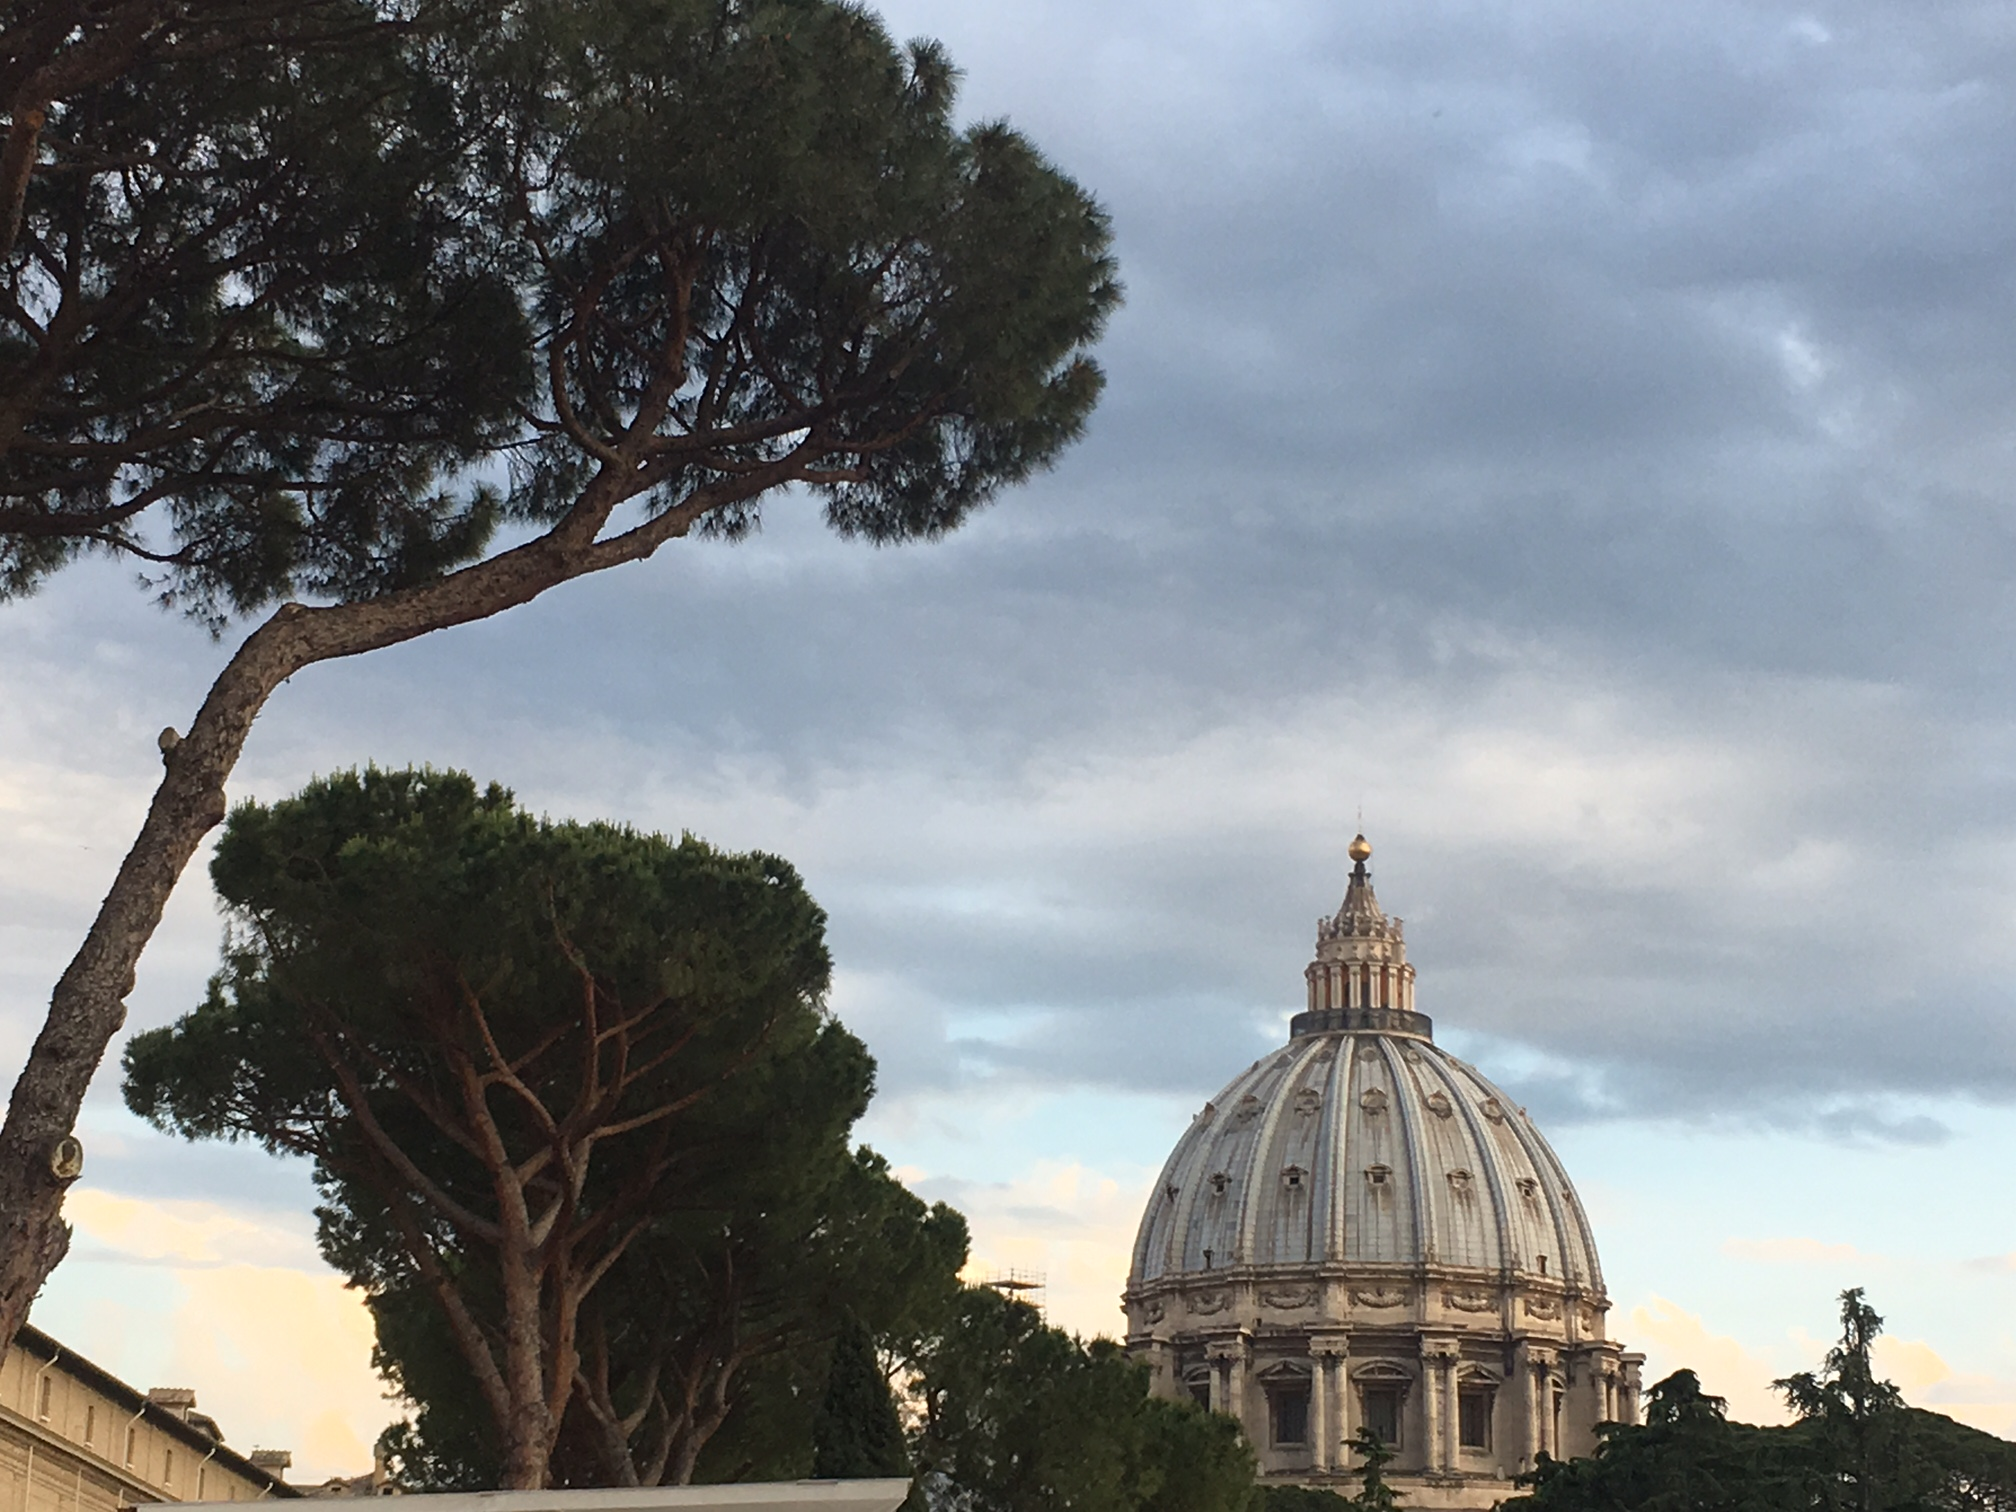 Sunset over Saint Peter's Basilica from the Vatican museum window